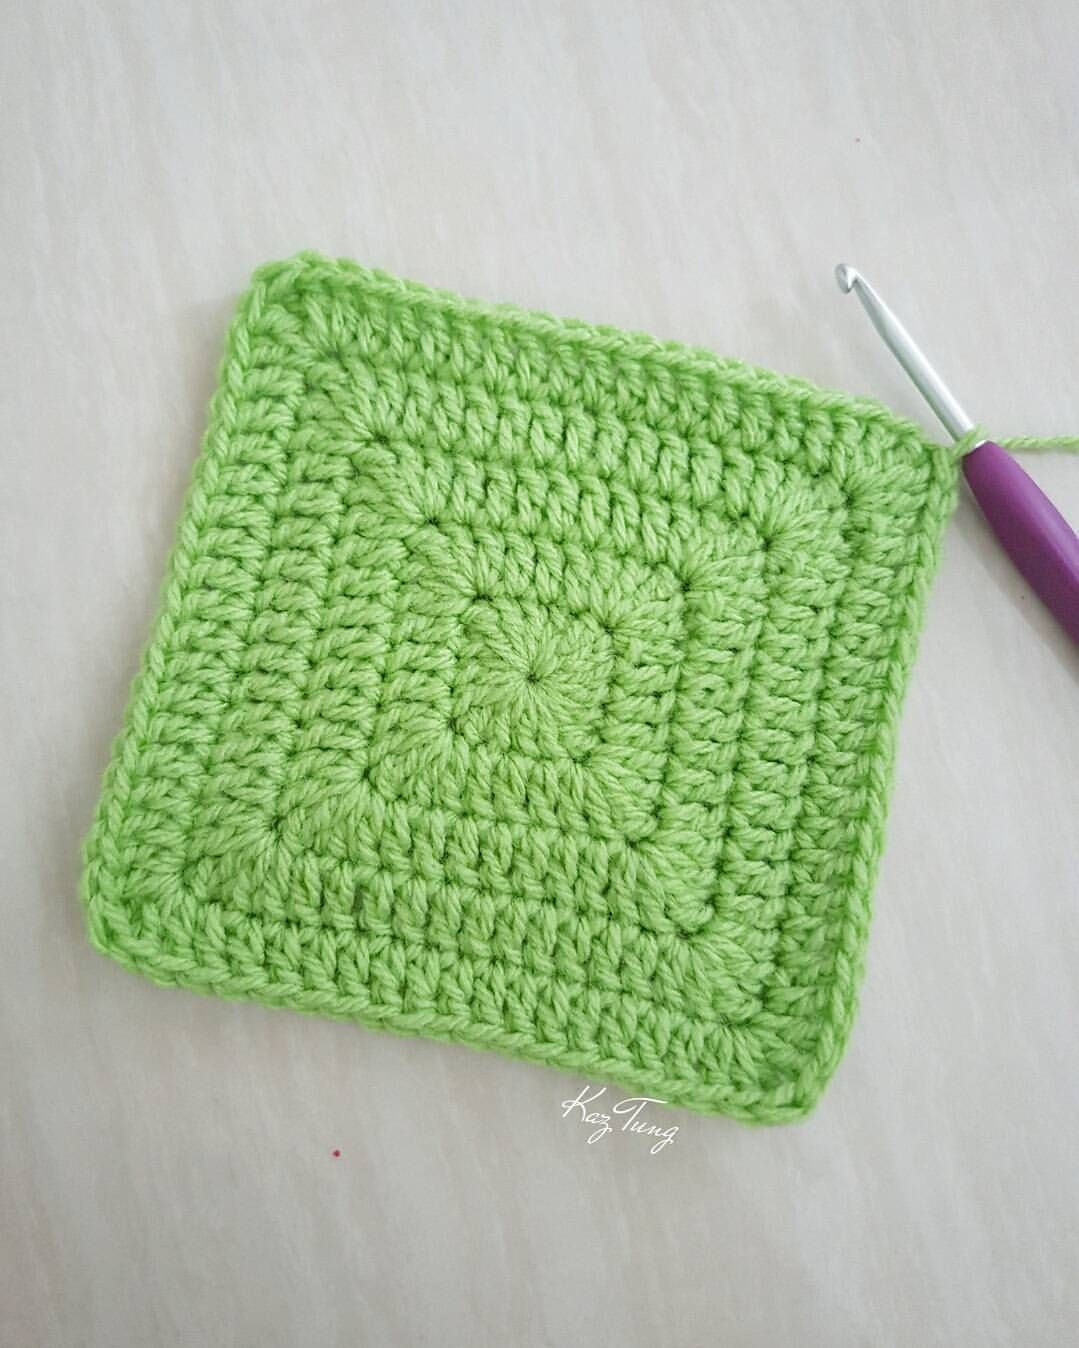 Inspirational solid Granny Square without Gaps Just Keep Doing 2dc 1tr Square Crochet Stitch Of Lovely 49 Photos Square Crochet Stitch